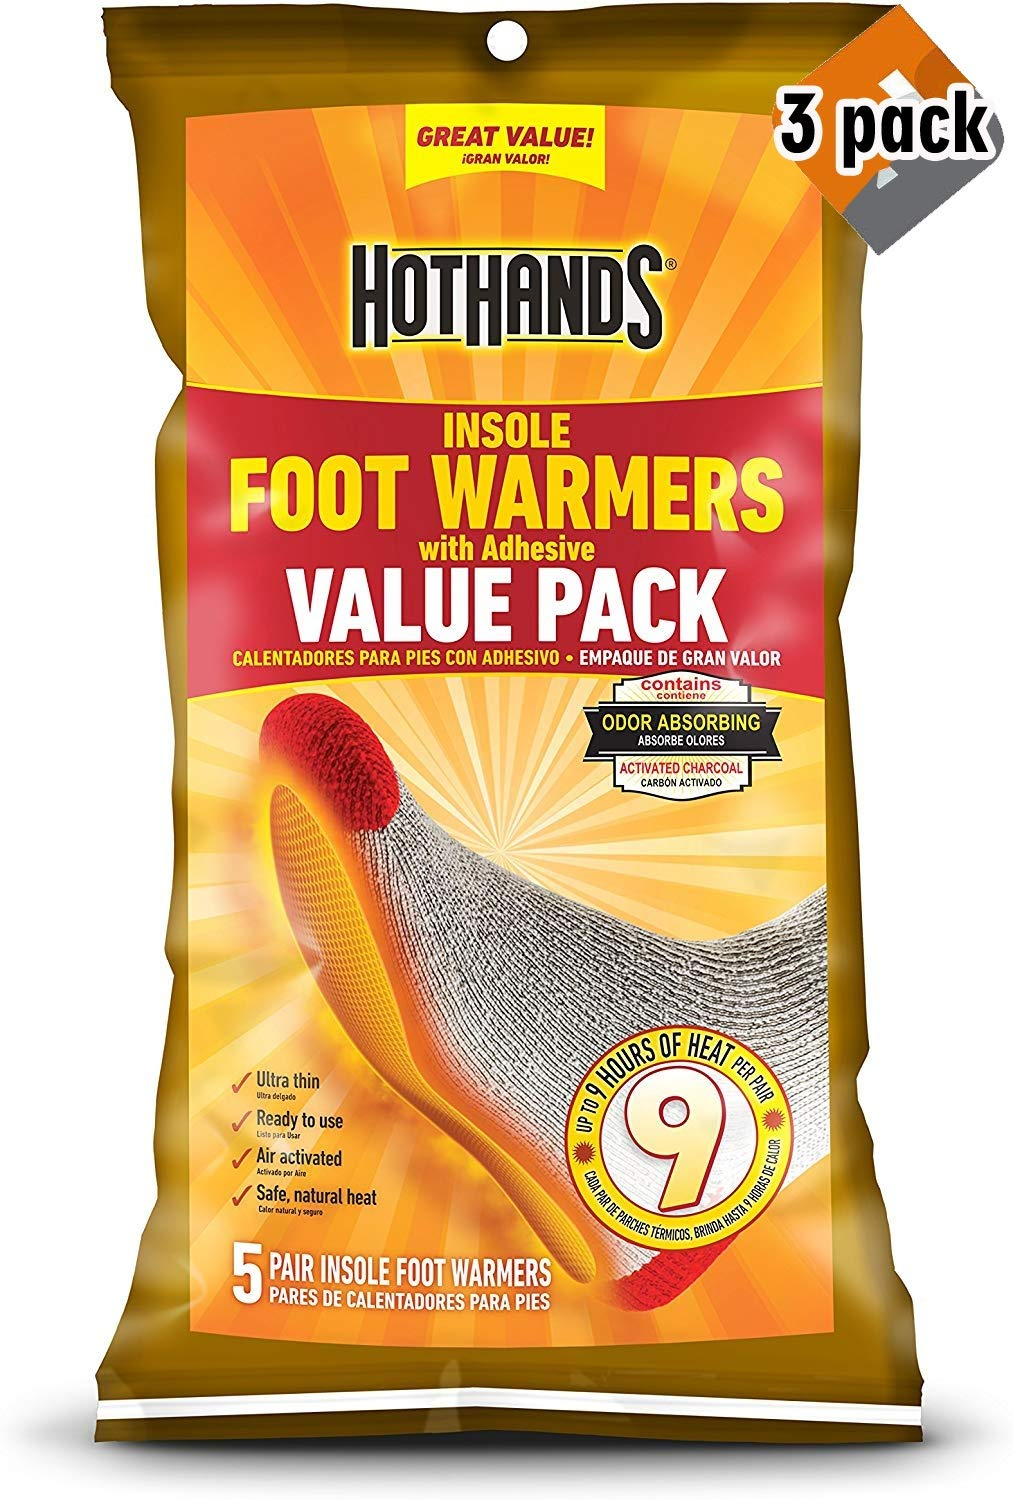 HotHands Insole Foot Warmer - 3 Pack by HotHands